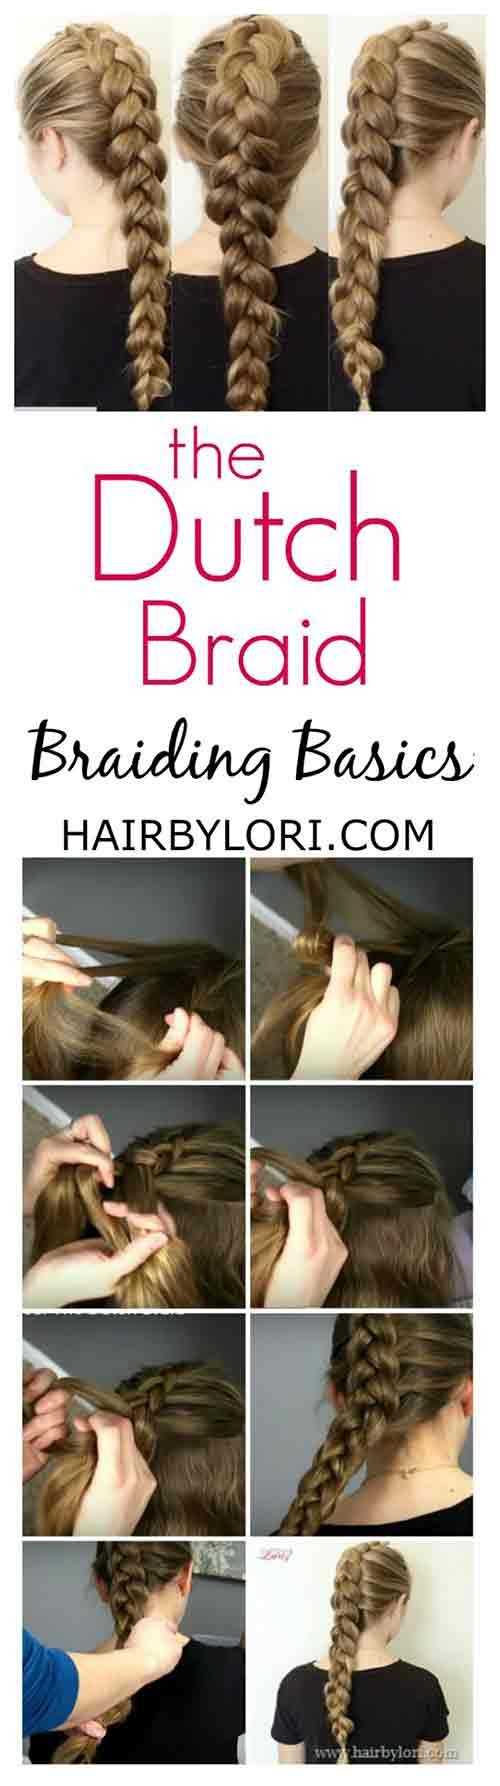 4. Dutch Braid